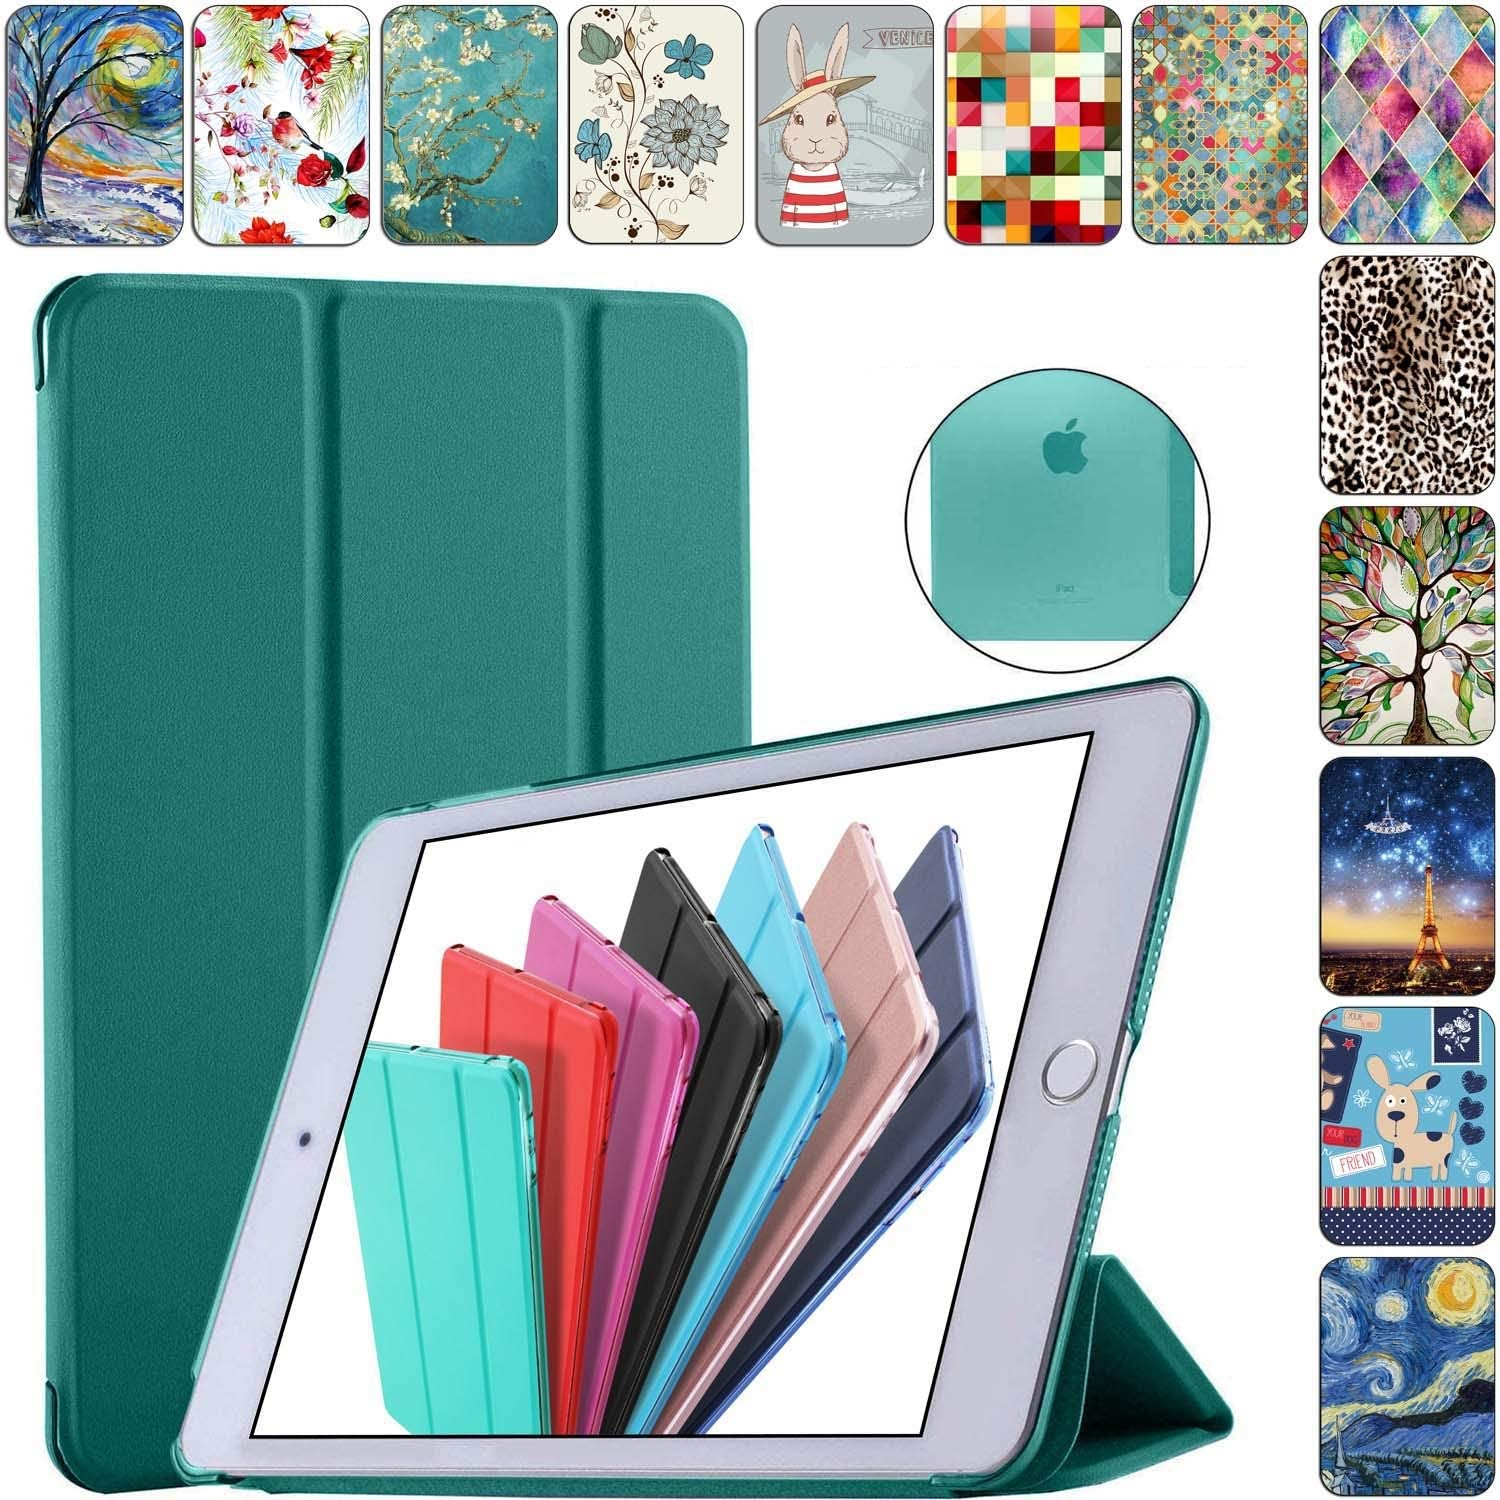 "DuraSafe Cases for iPad 4/3 / 2-9.7"" A1458 A1459 A1460 A1403 A1416 A1430 A1395 A1396 A1397 Smart Tri Fold Cover with Translucent Back - Green"